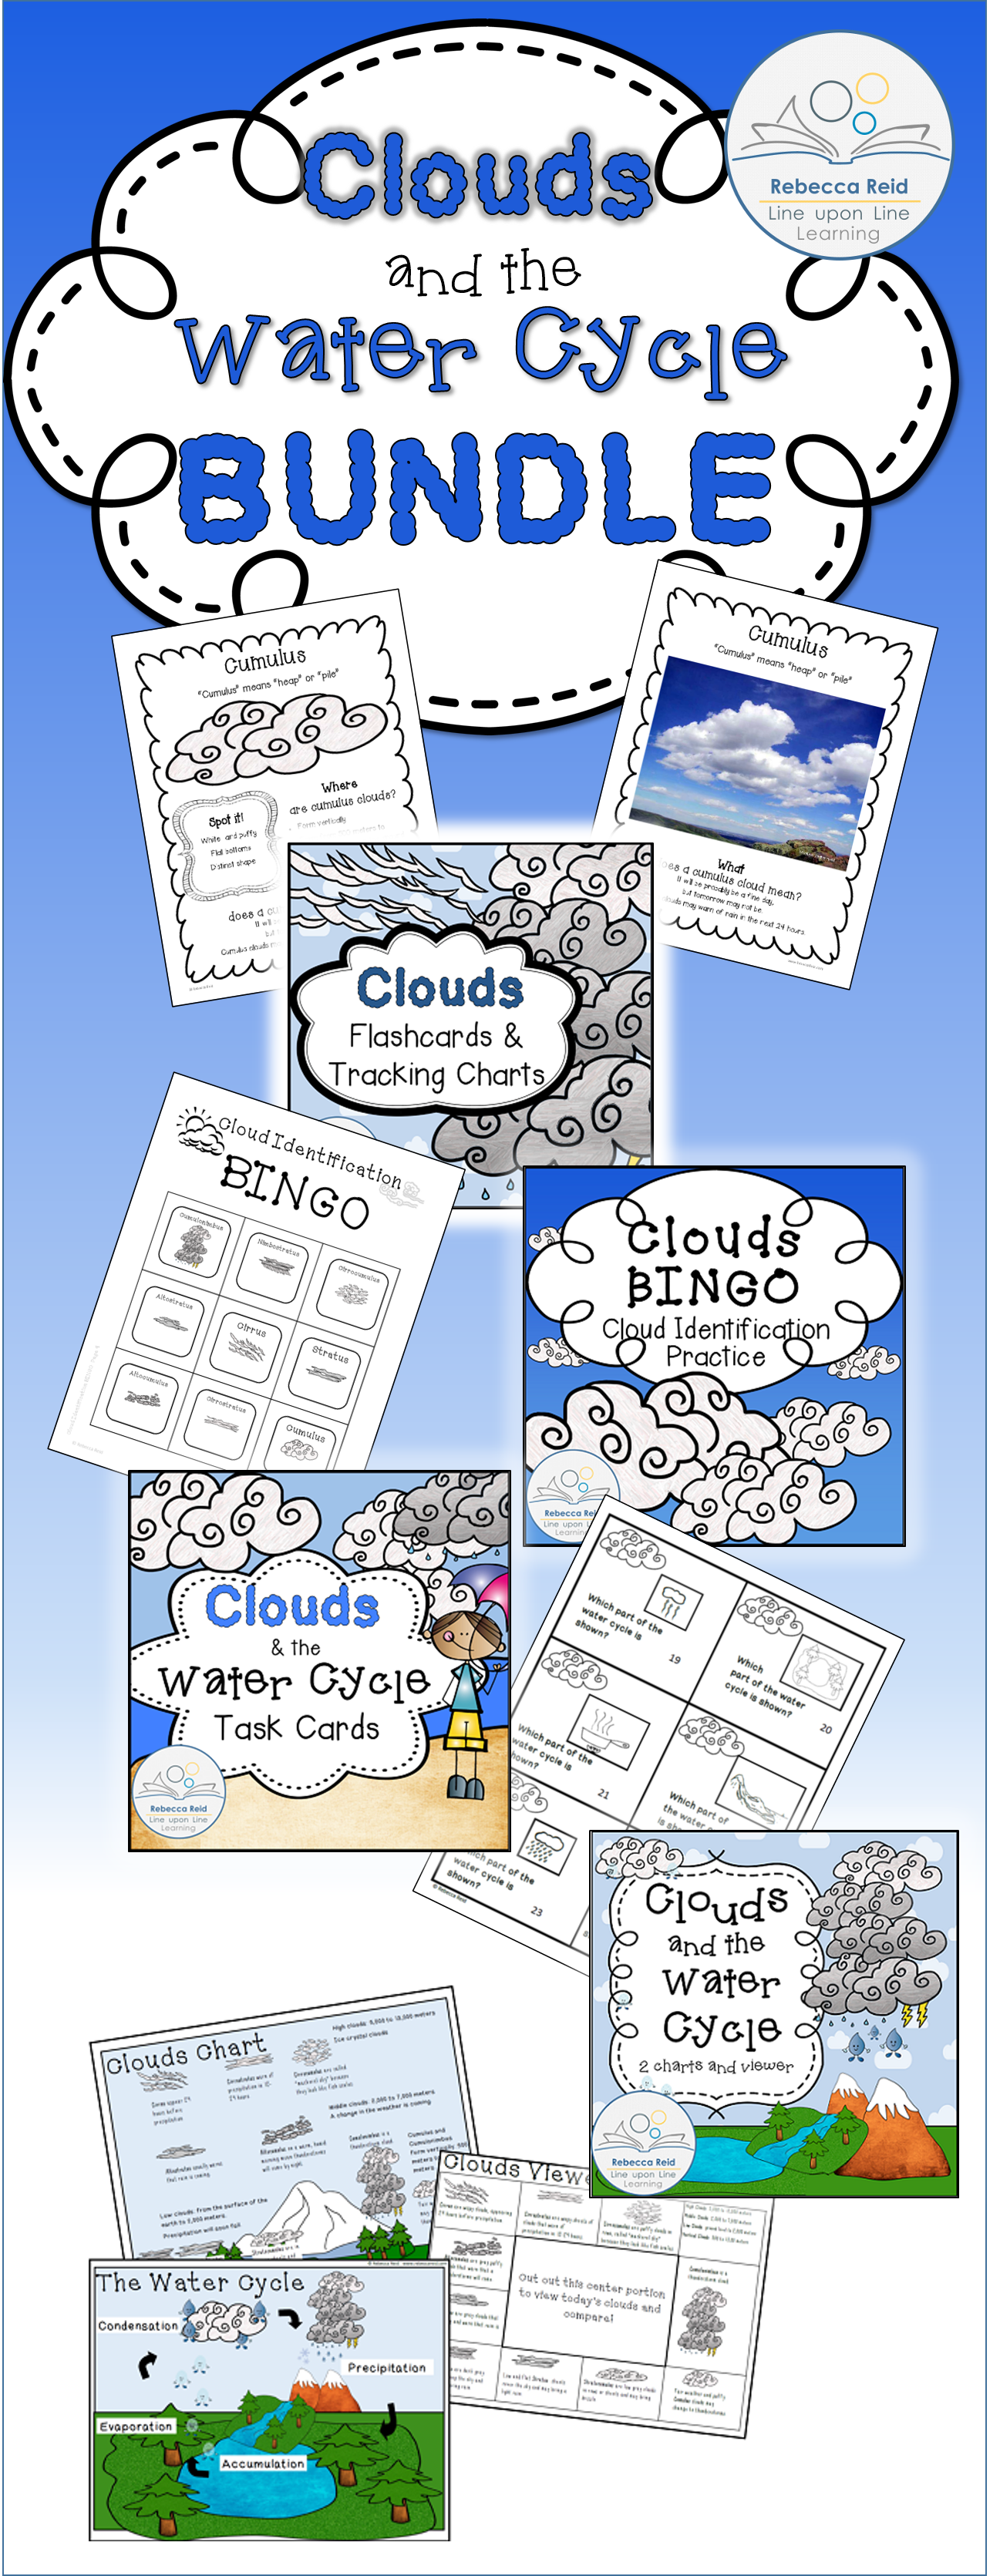 medium resolution of clouds and the water cycle bundle is packed with activities to review ten different clouds